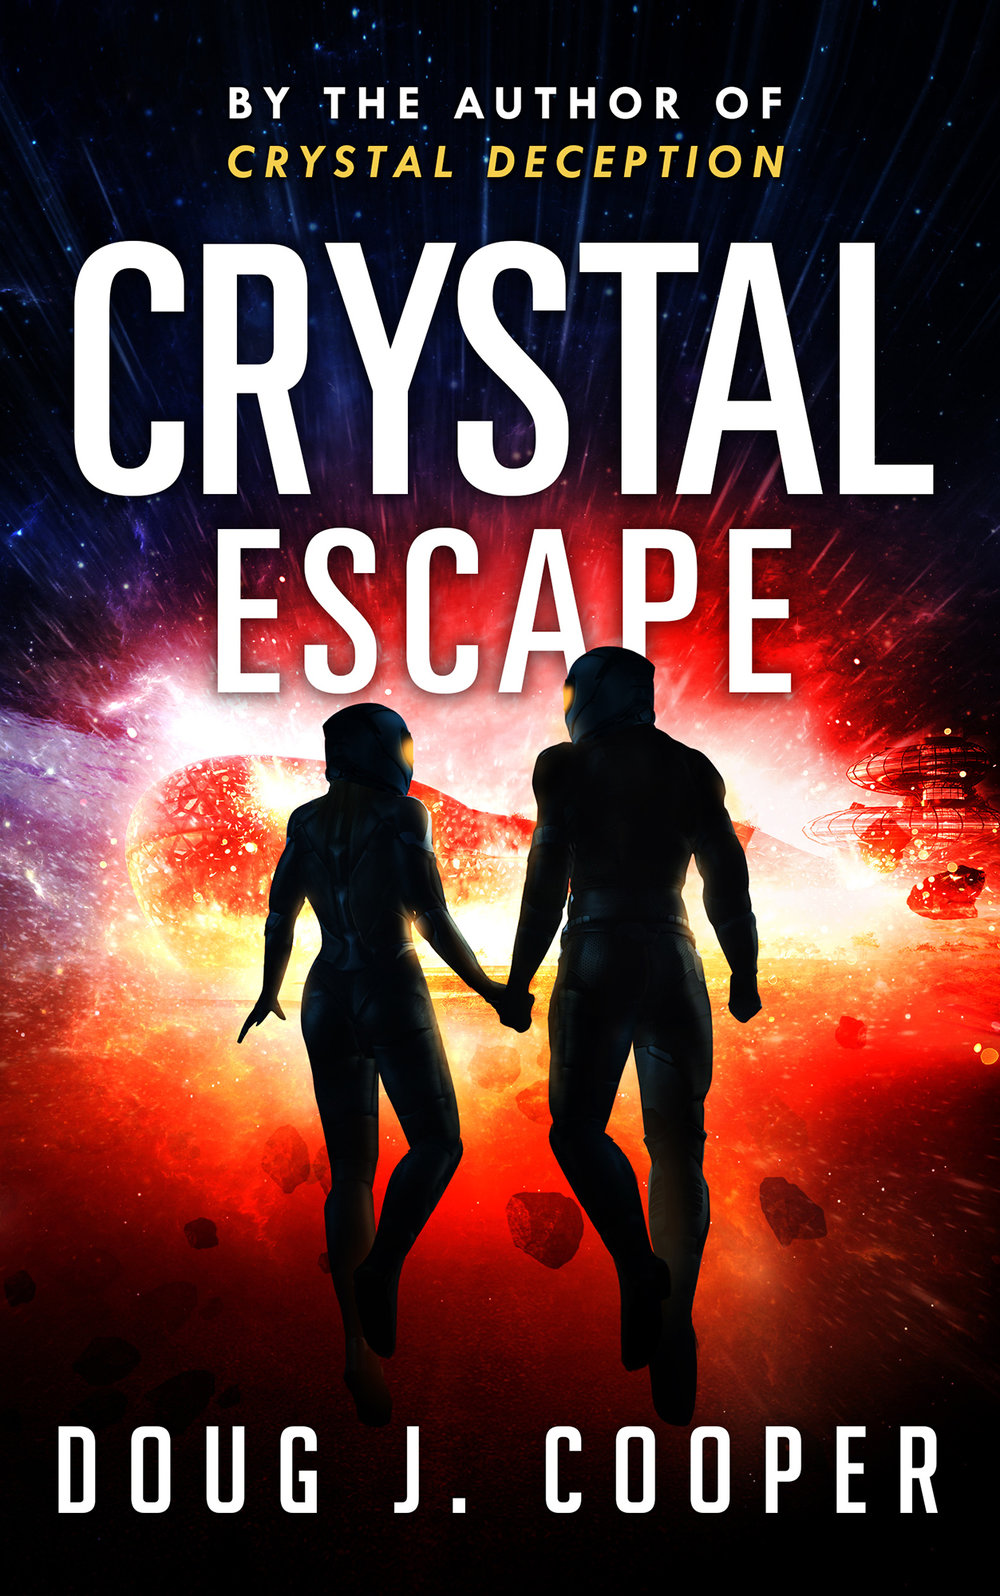 Crystal Escape - Ebook Small.jpg